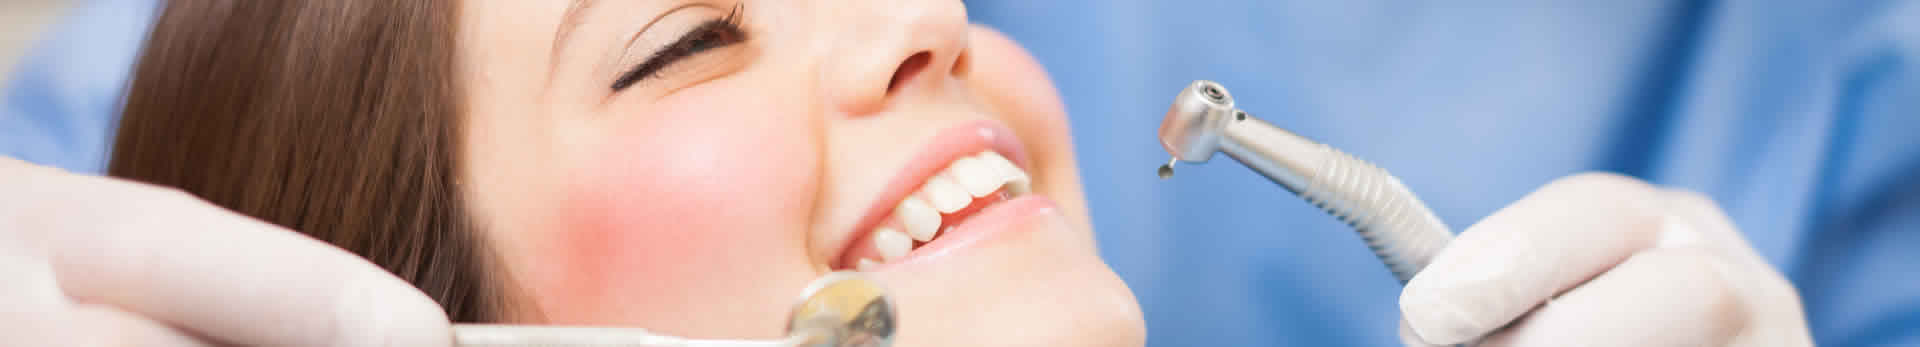 Dentures Melbourne | Denture Repairs | Partial Dentures Melbourne